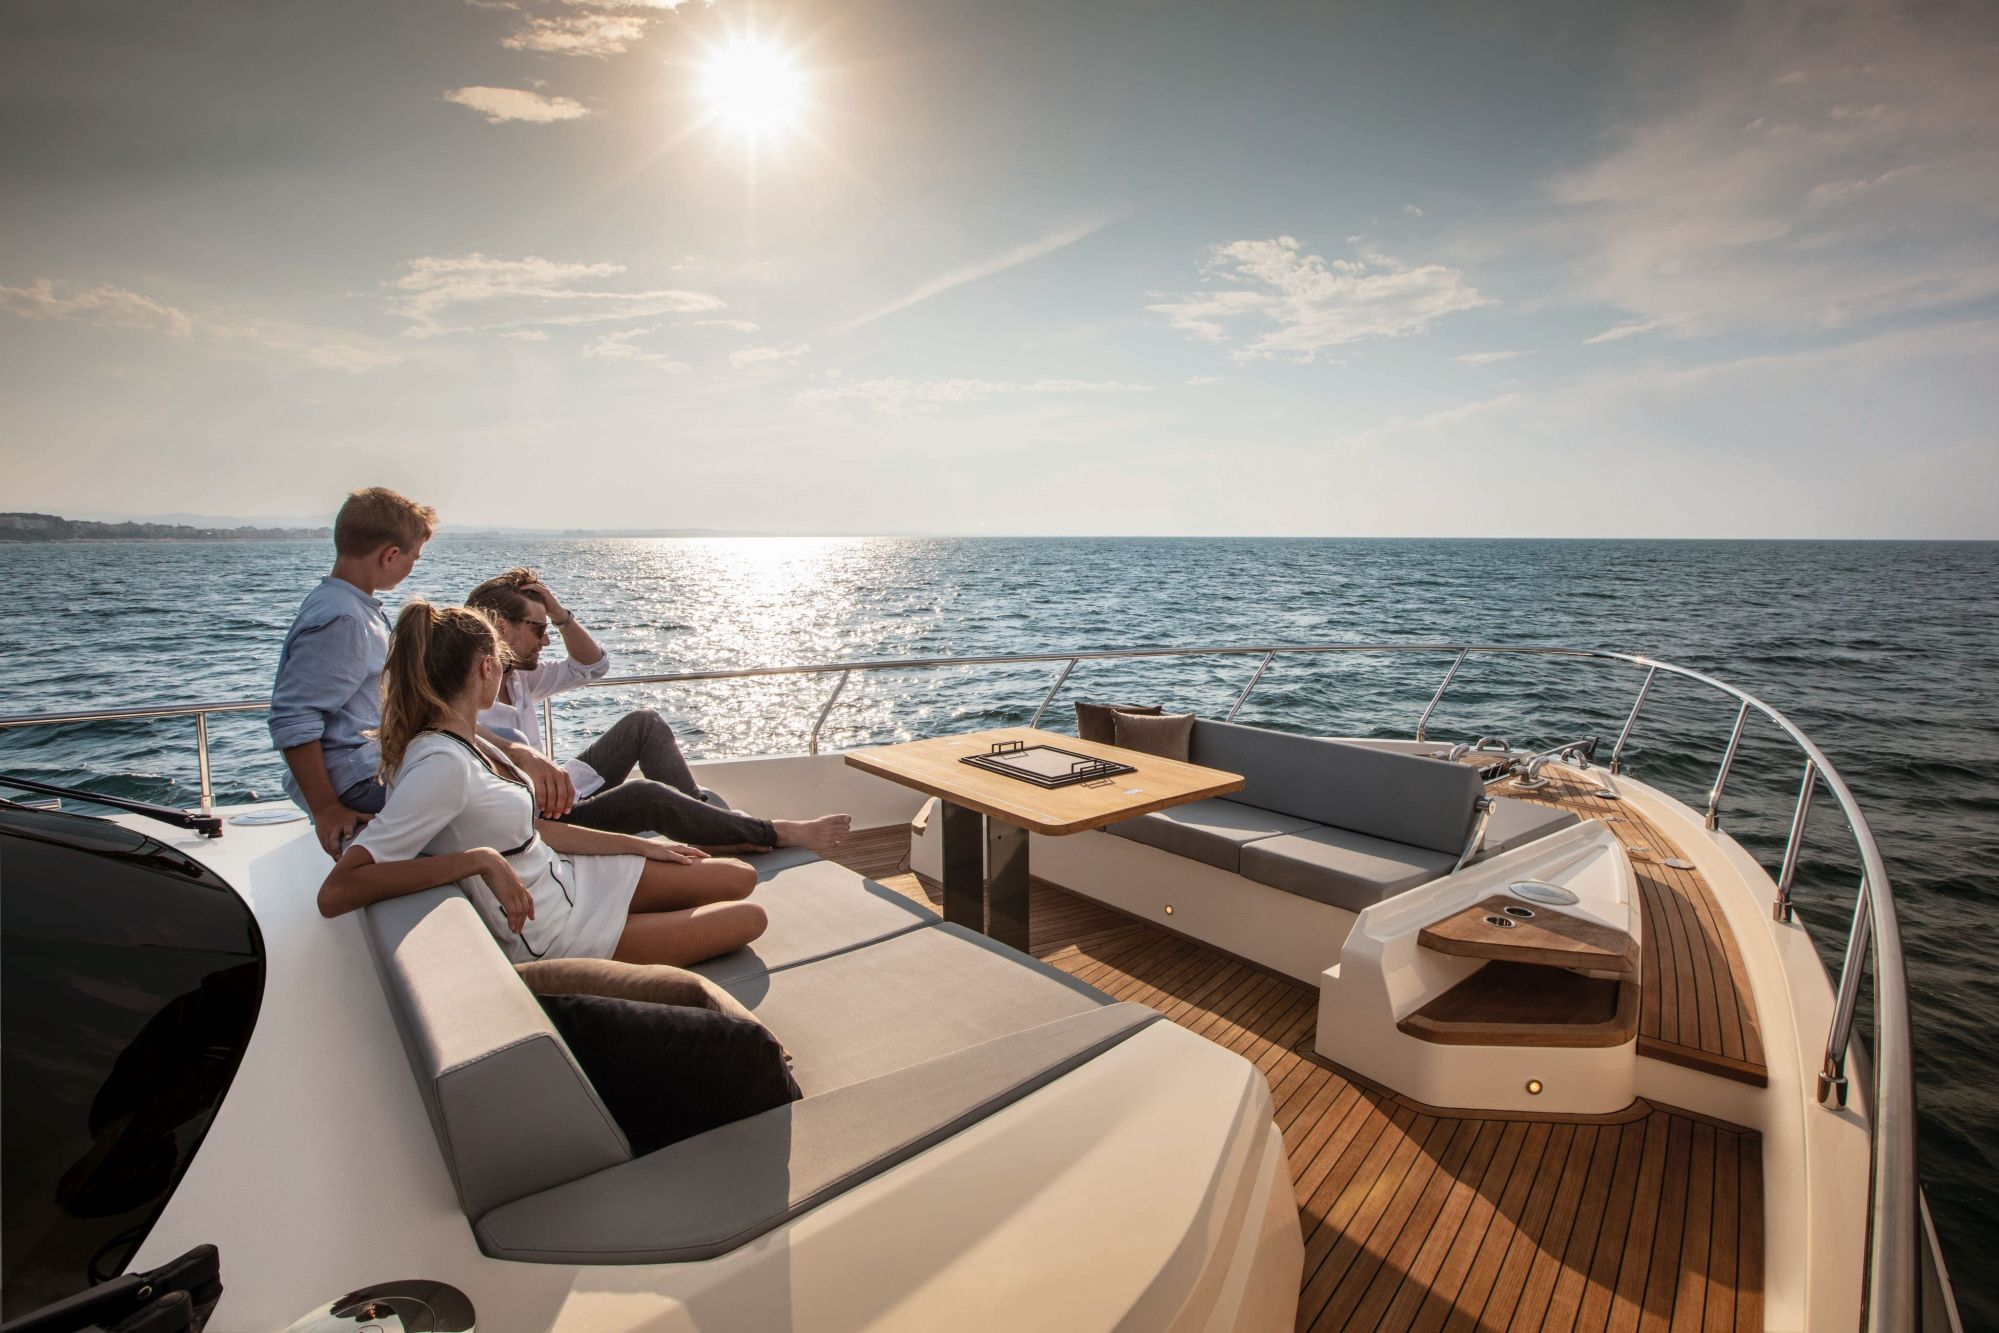 Set Sail On The Ferretti Yachts 720, The Italian Shipbuilder's Latest Luxury Cruiser In Singapore